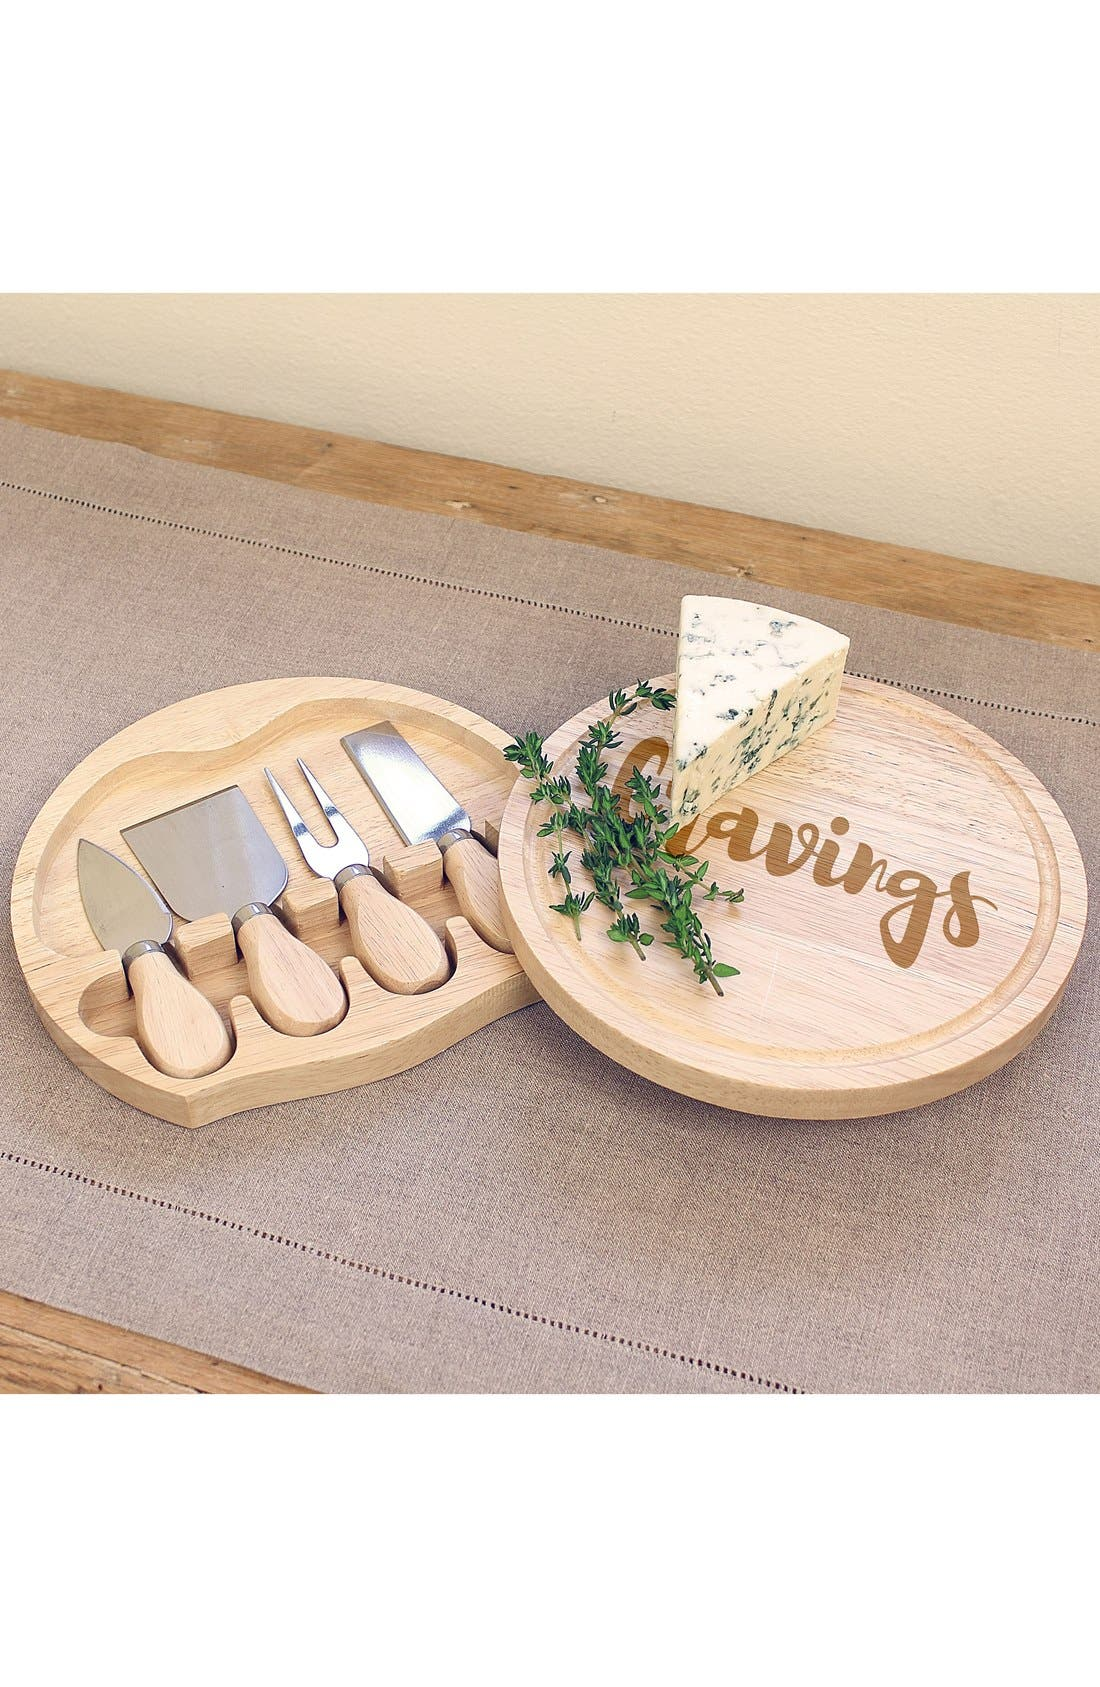 Alternate Image 1 Selected - Cathy's Concepts 'Cravings' 5-Piece Cheese Board & Utensil Set